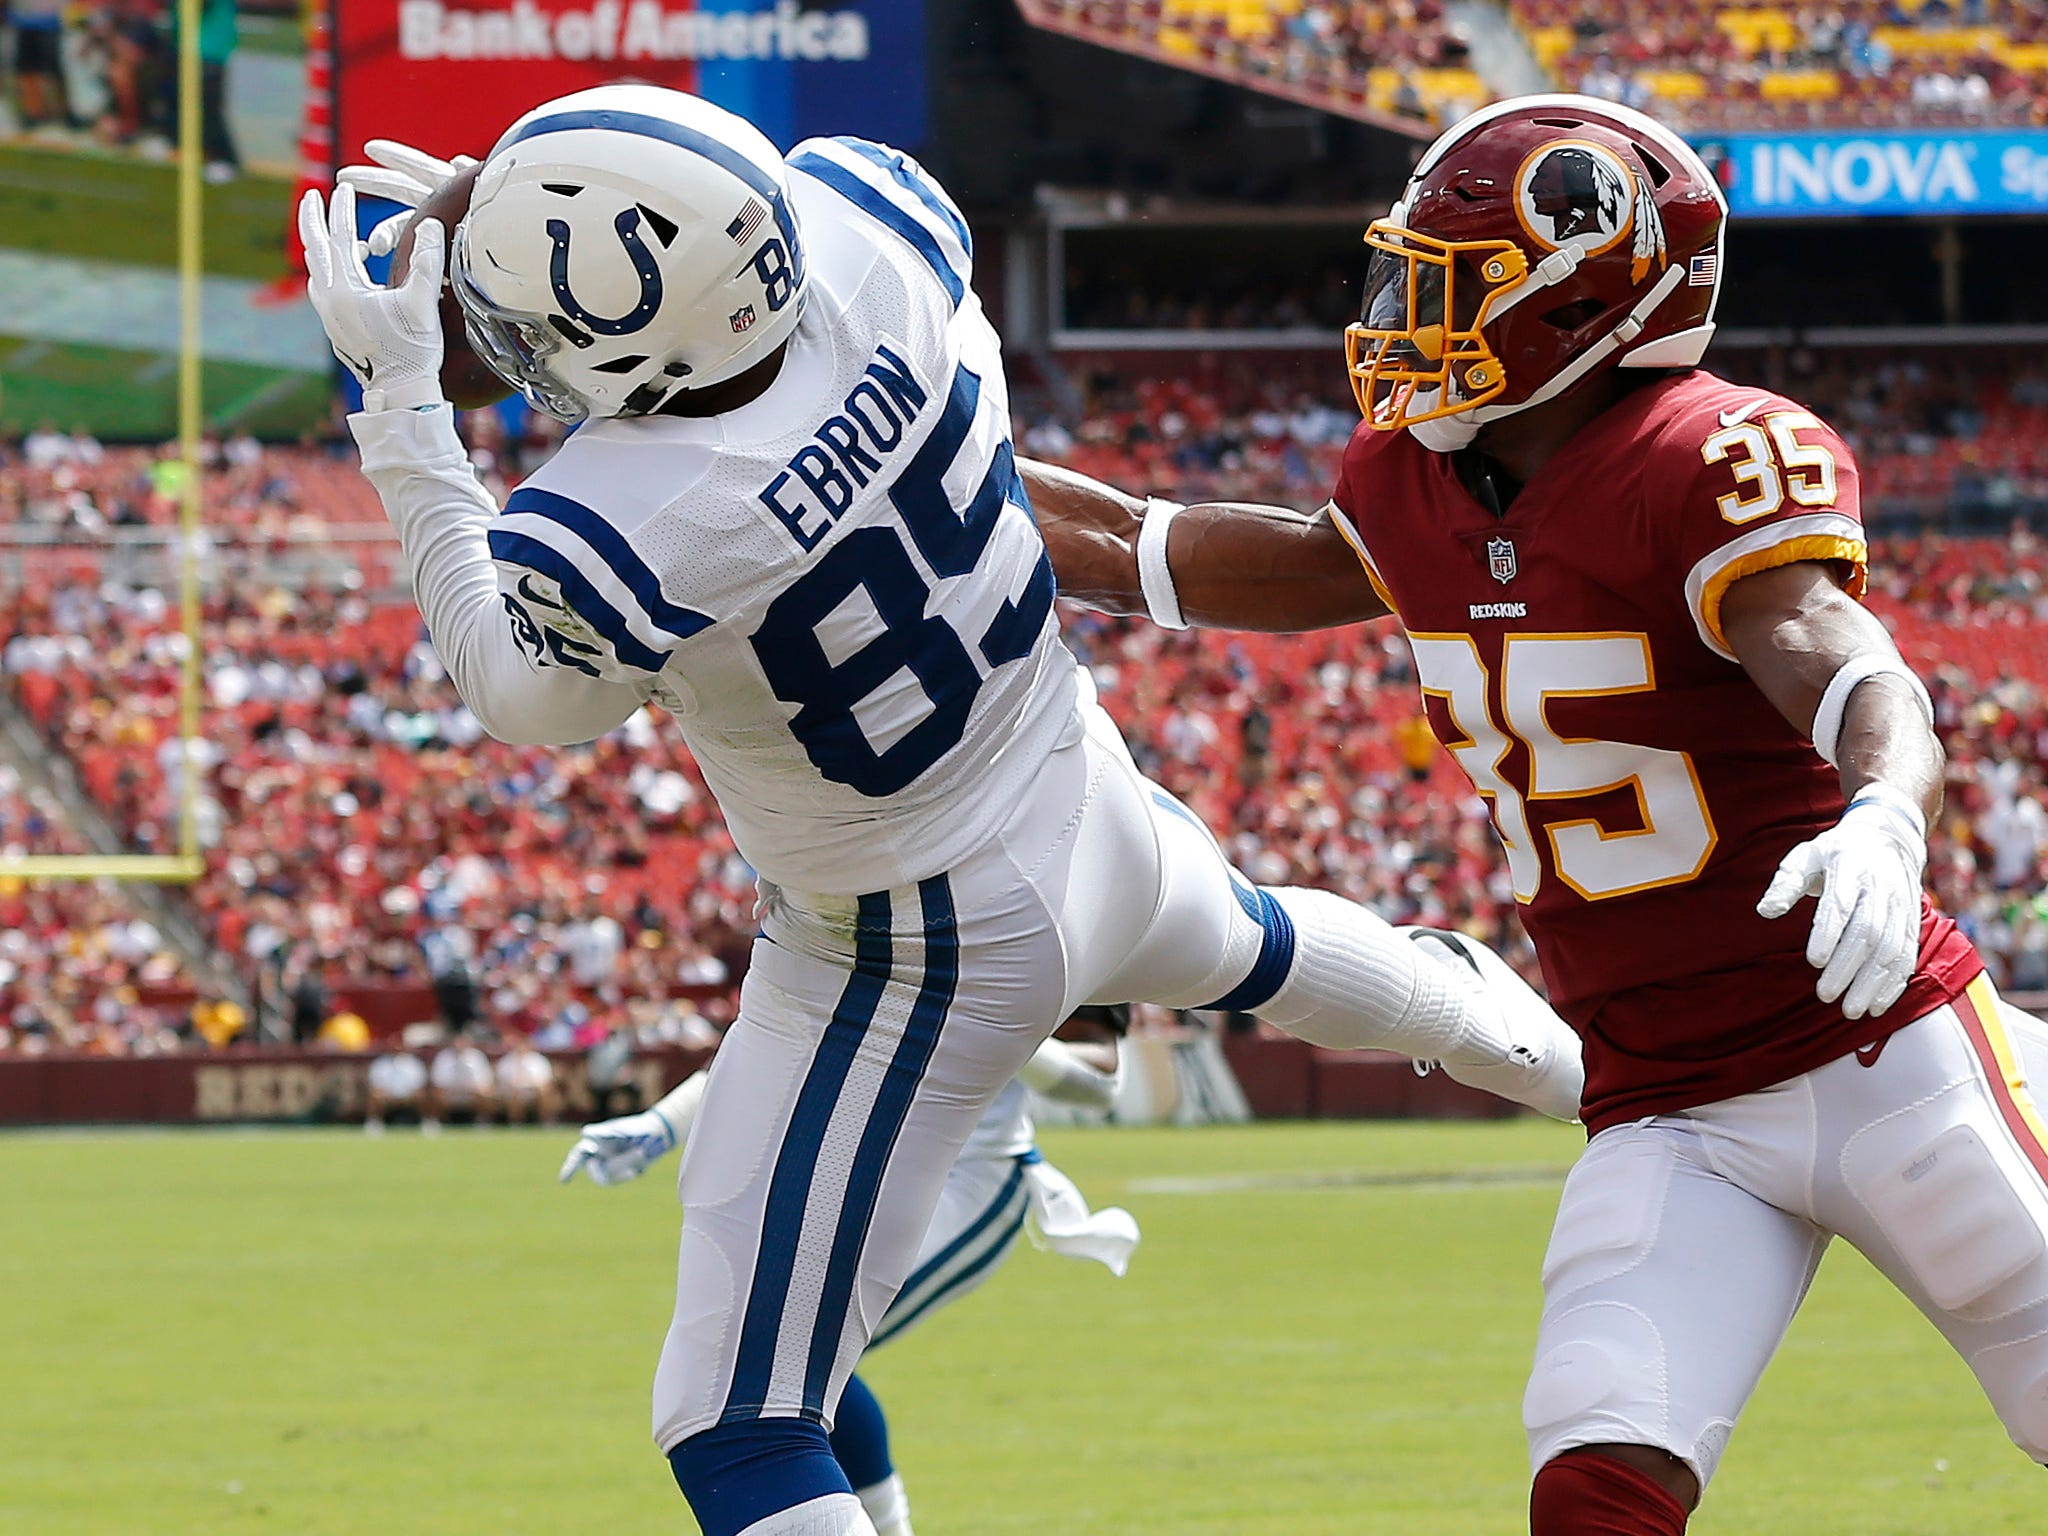 Indianapolis Colts tight end Eric Ebron catches a touchdown pass as Washington Redskins defensive back Montae Nicholson defends in the first quarter at FedEx Field.